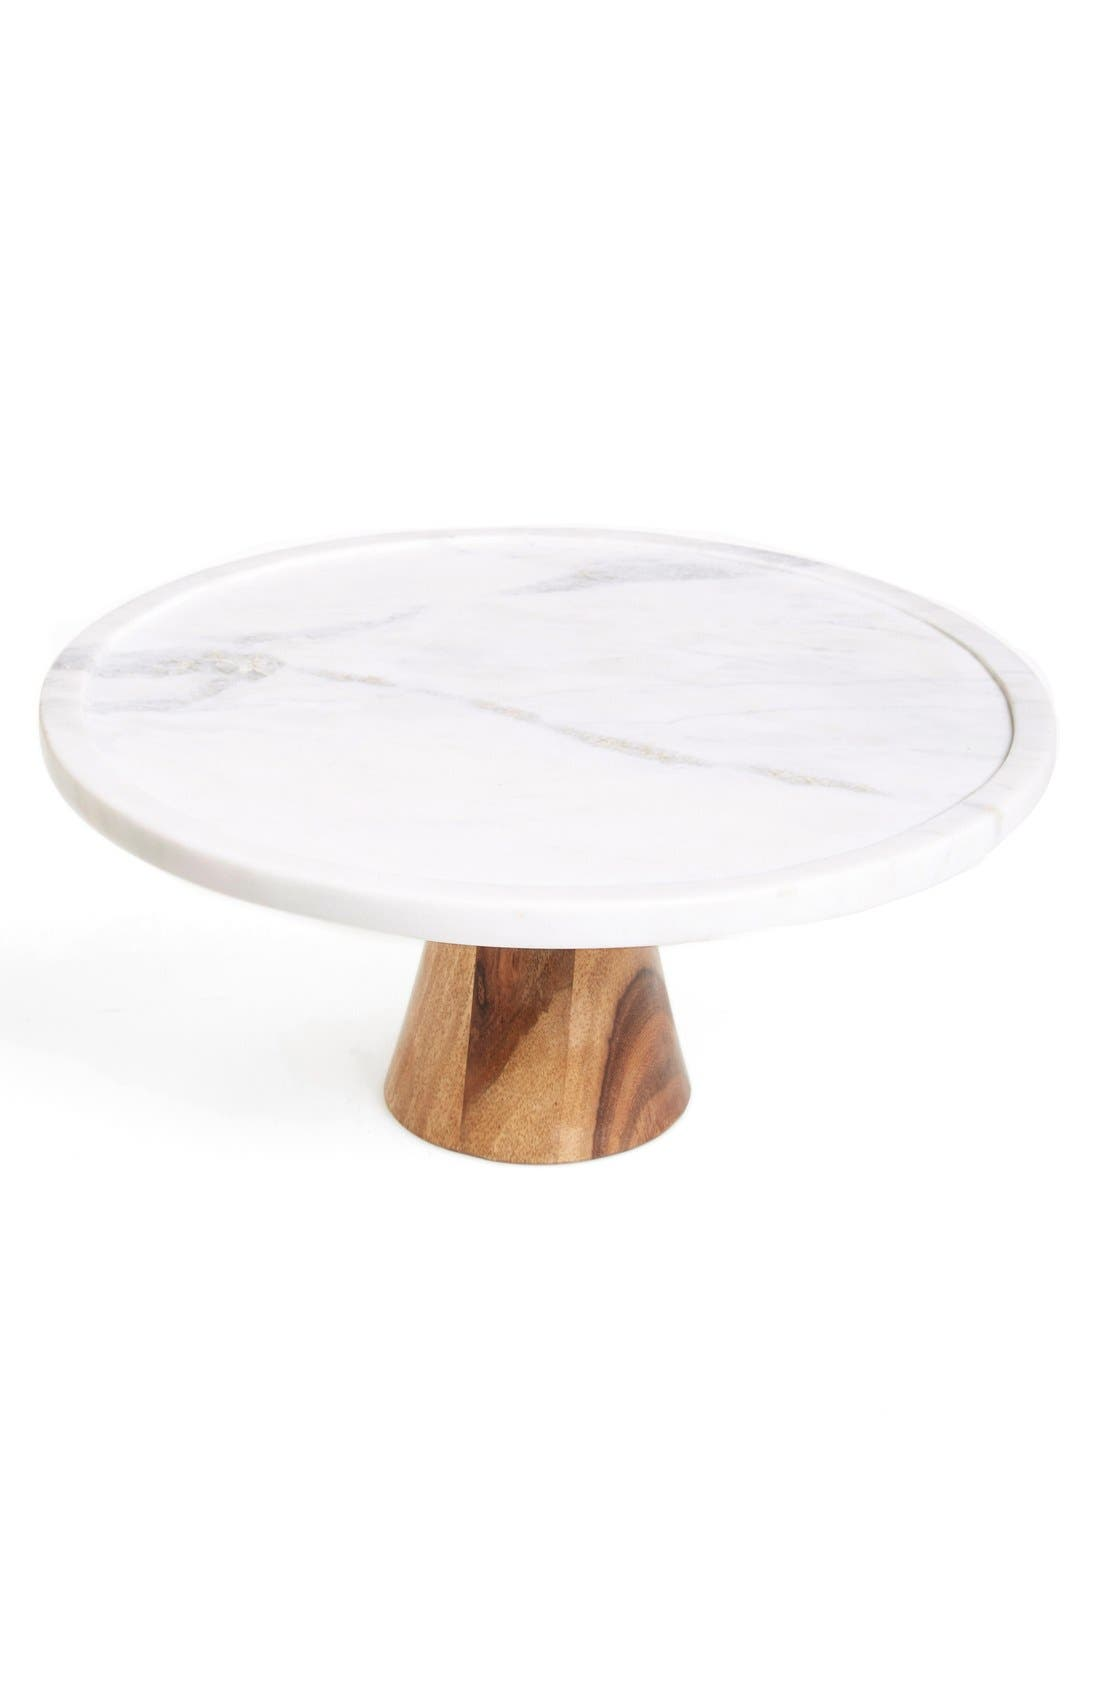 Alternate Image 1 Selected - Thirstystone Marble & Wood Cake Stand